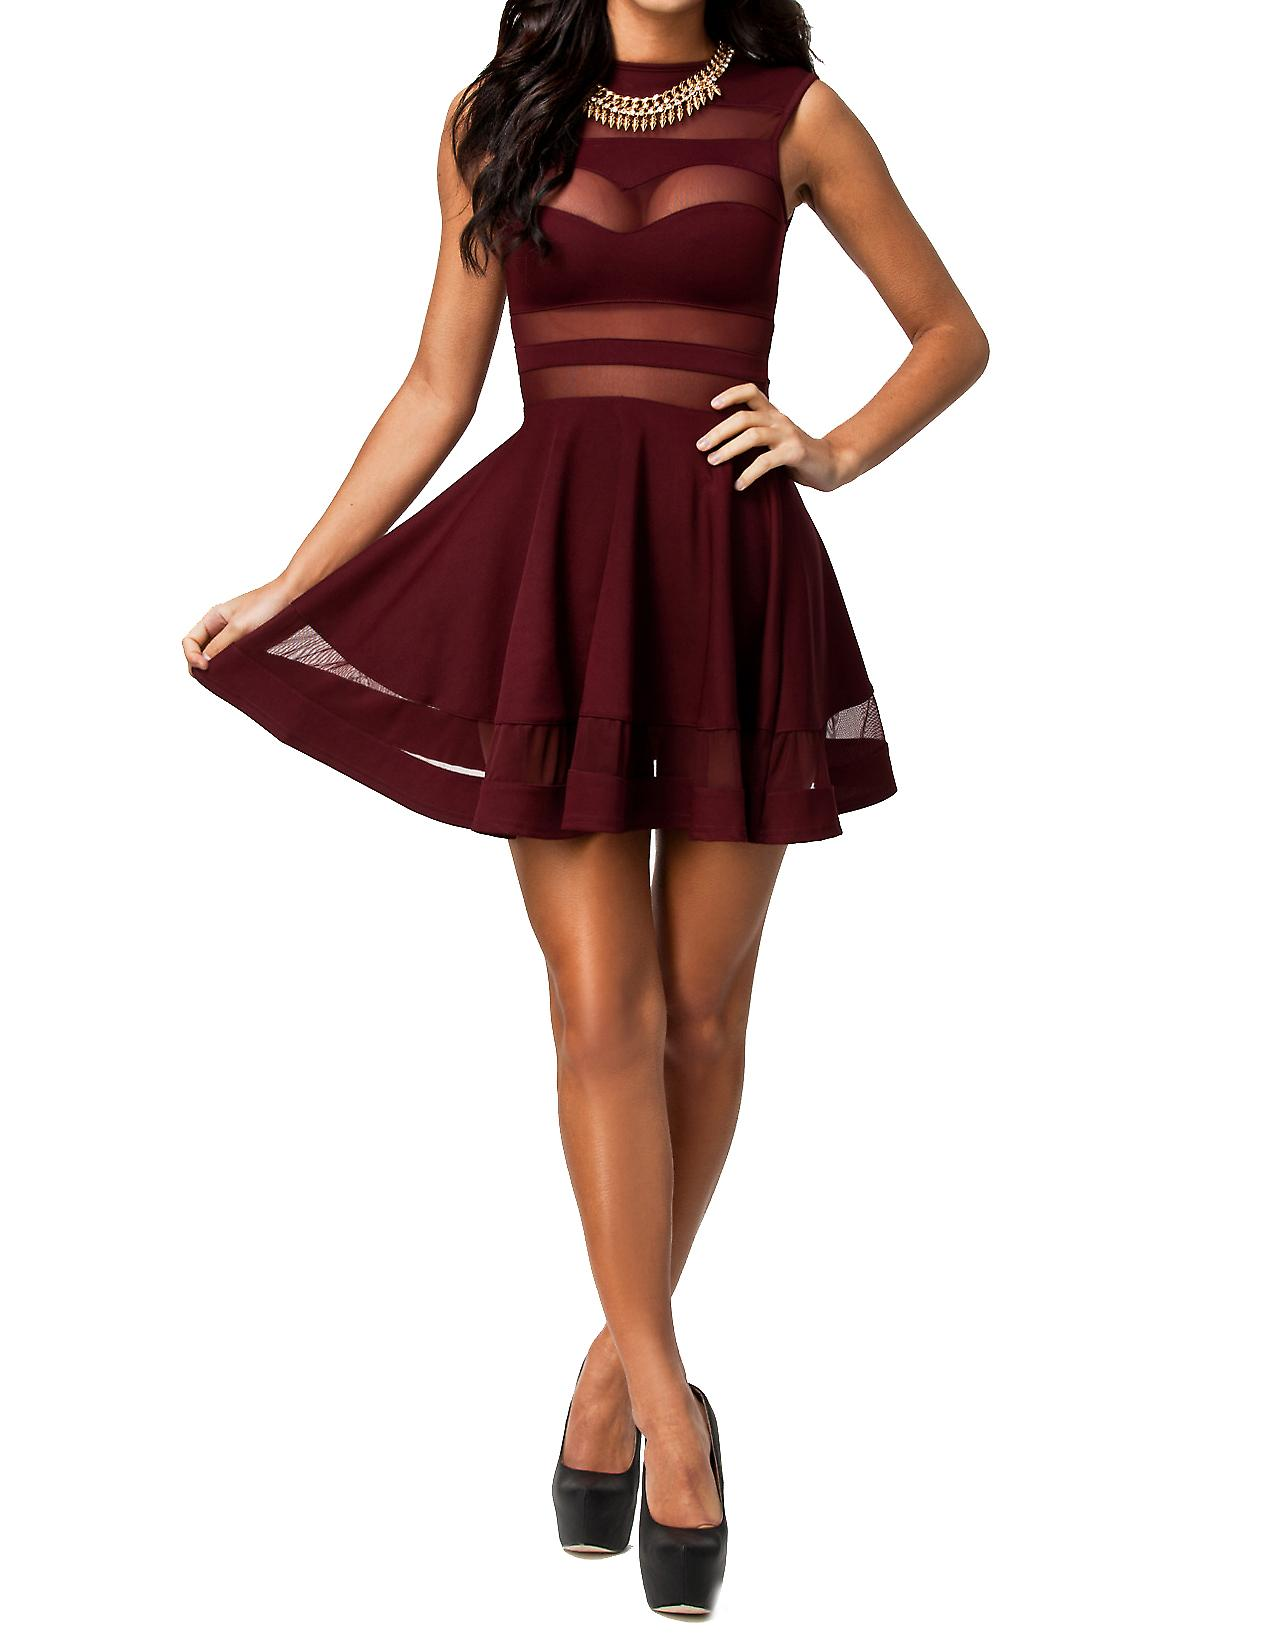 Waooh - Fashion - openwork Skater Dress